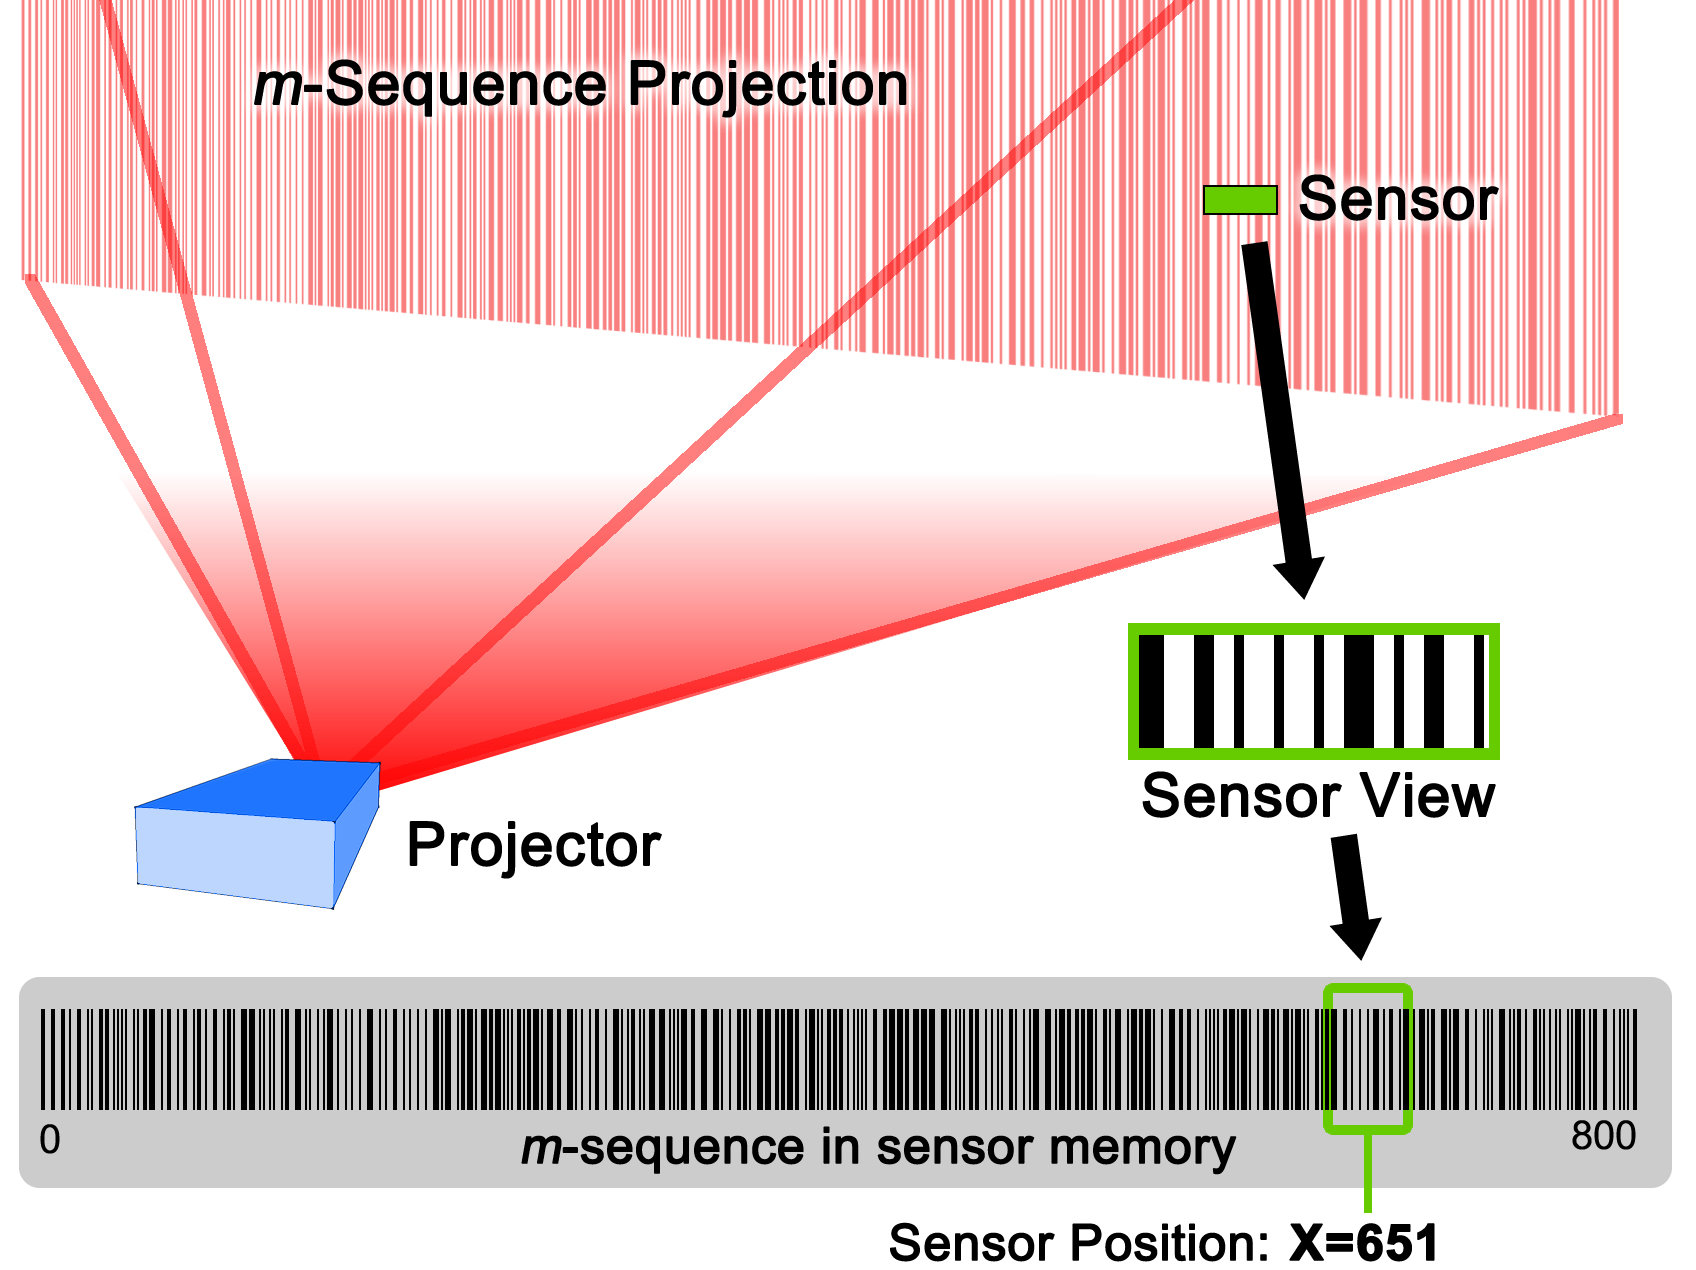 m-sequence projection